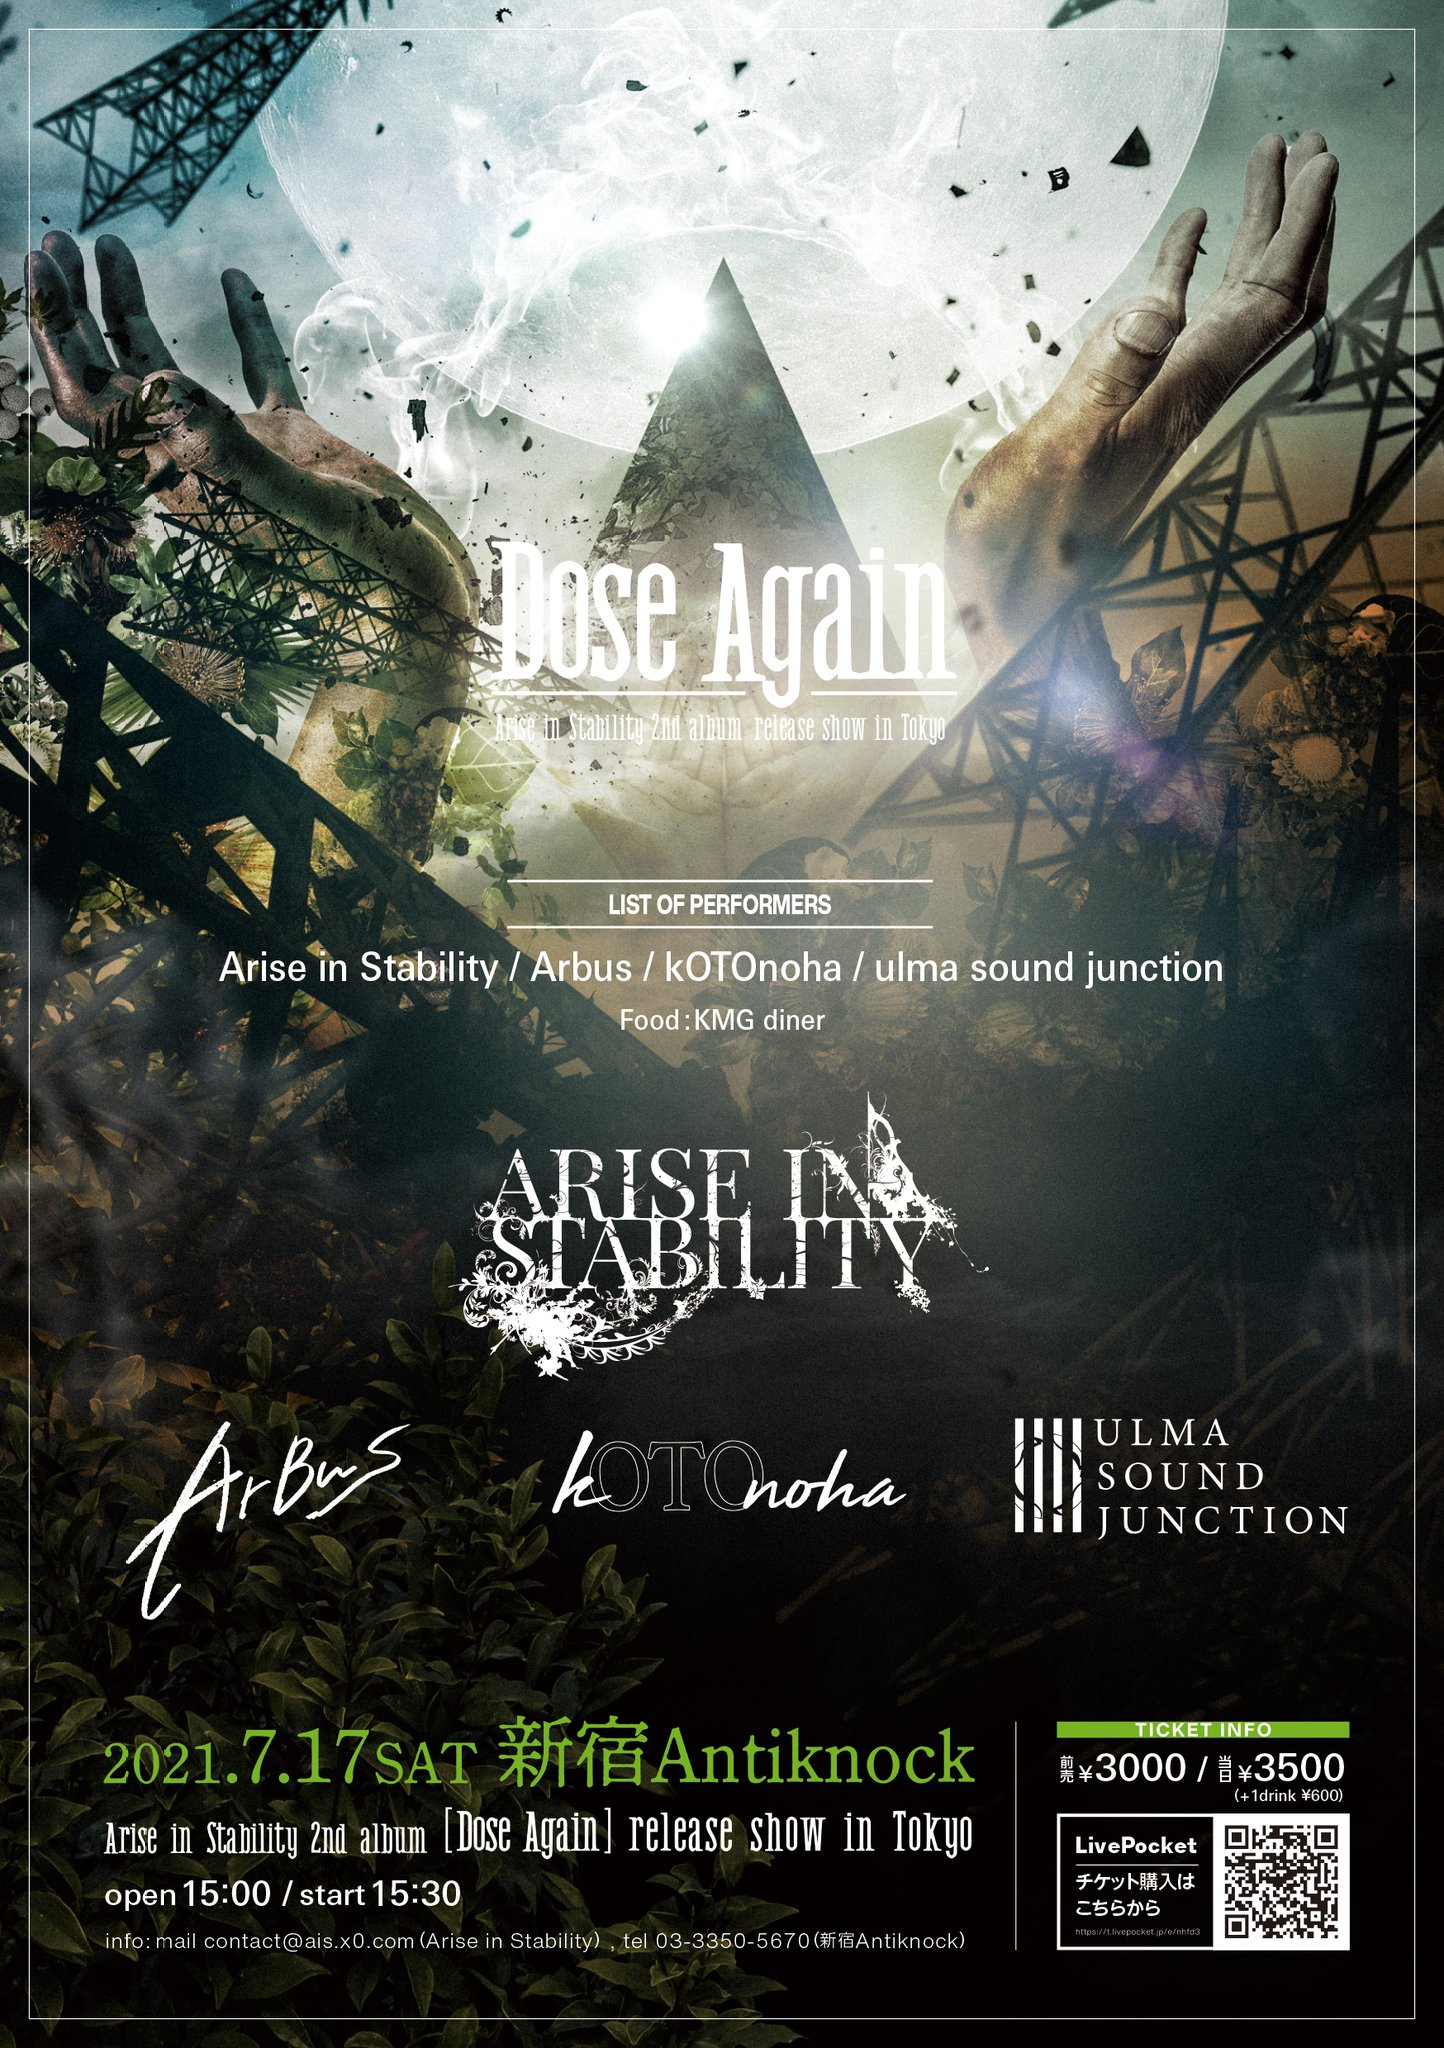 """Arise in Stability 2nd album""""Dose Again"""" release show in Tokyo"""